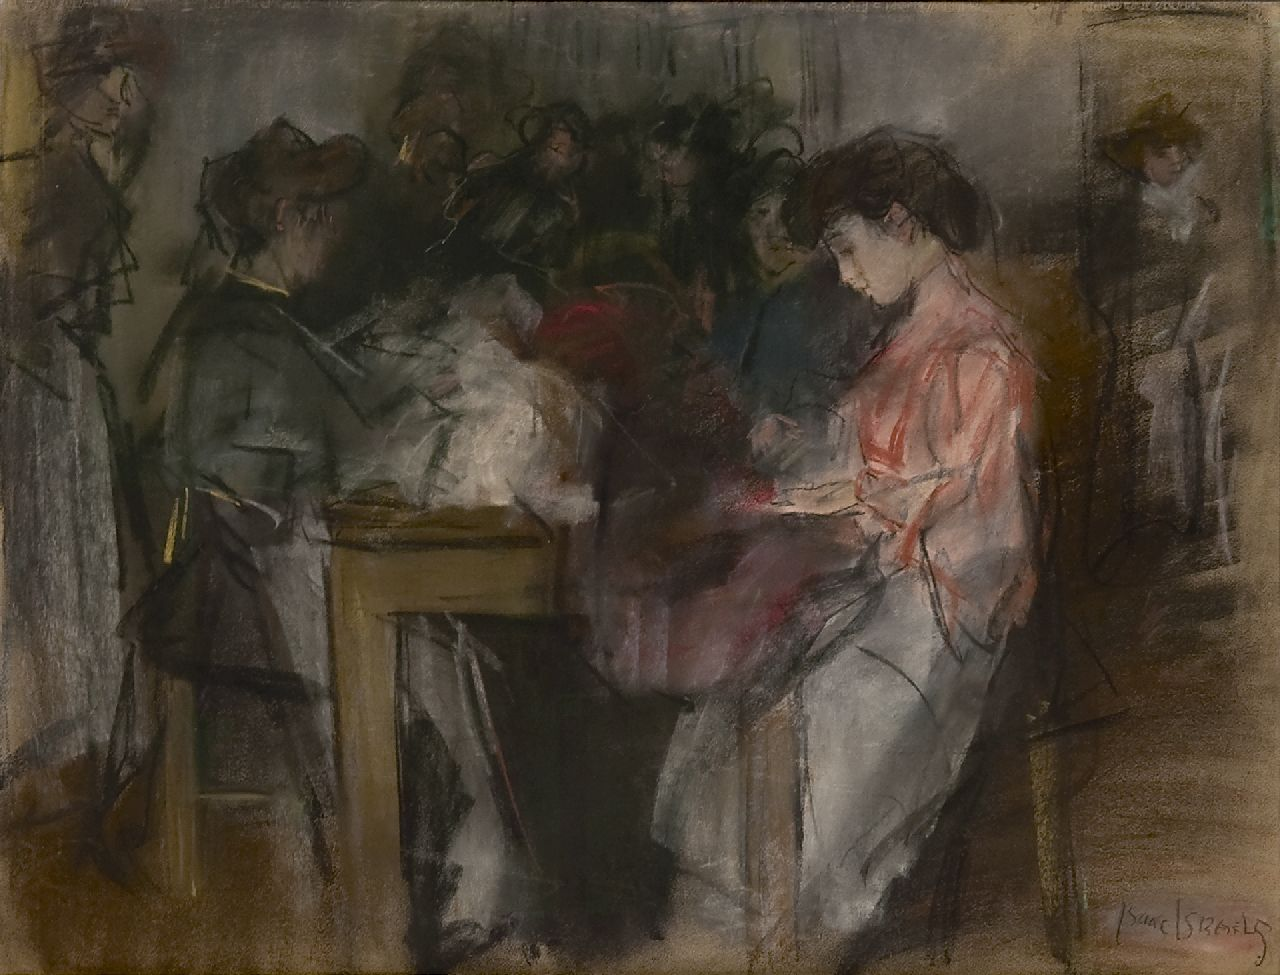 Israels I.L.  | 'Isaac' Lazarus Israels, Seamstresses at the Atelier Paquin, Paris, pencil and pastel on paper 49.6 x 64.3 cm, signed l.r. and executed ca. 1904